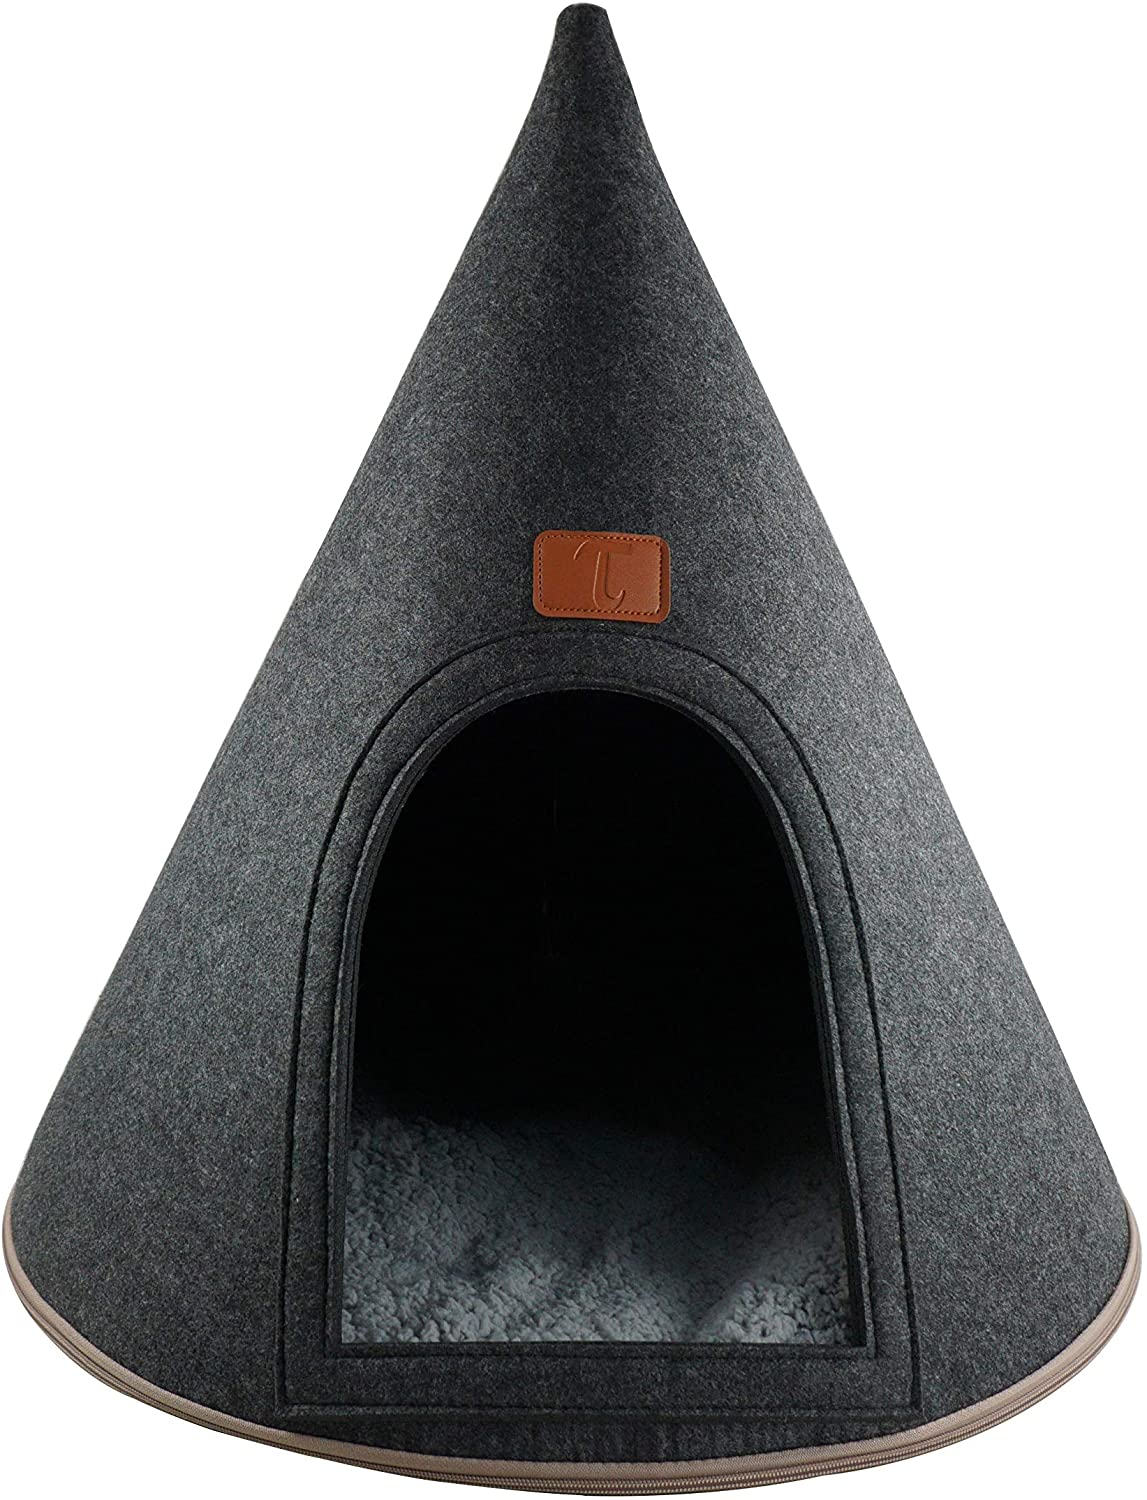 My Secret Cone Cave Easy Assembly Premium Felt Modern Cat Dog Small Animal Pet House Bed Condo